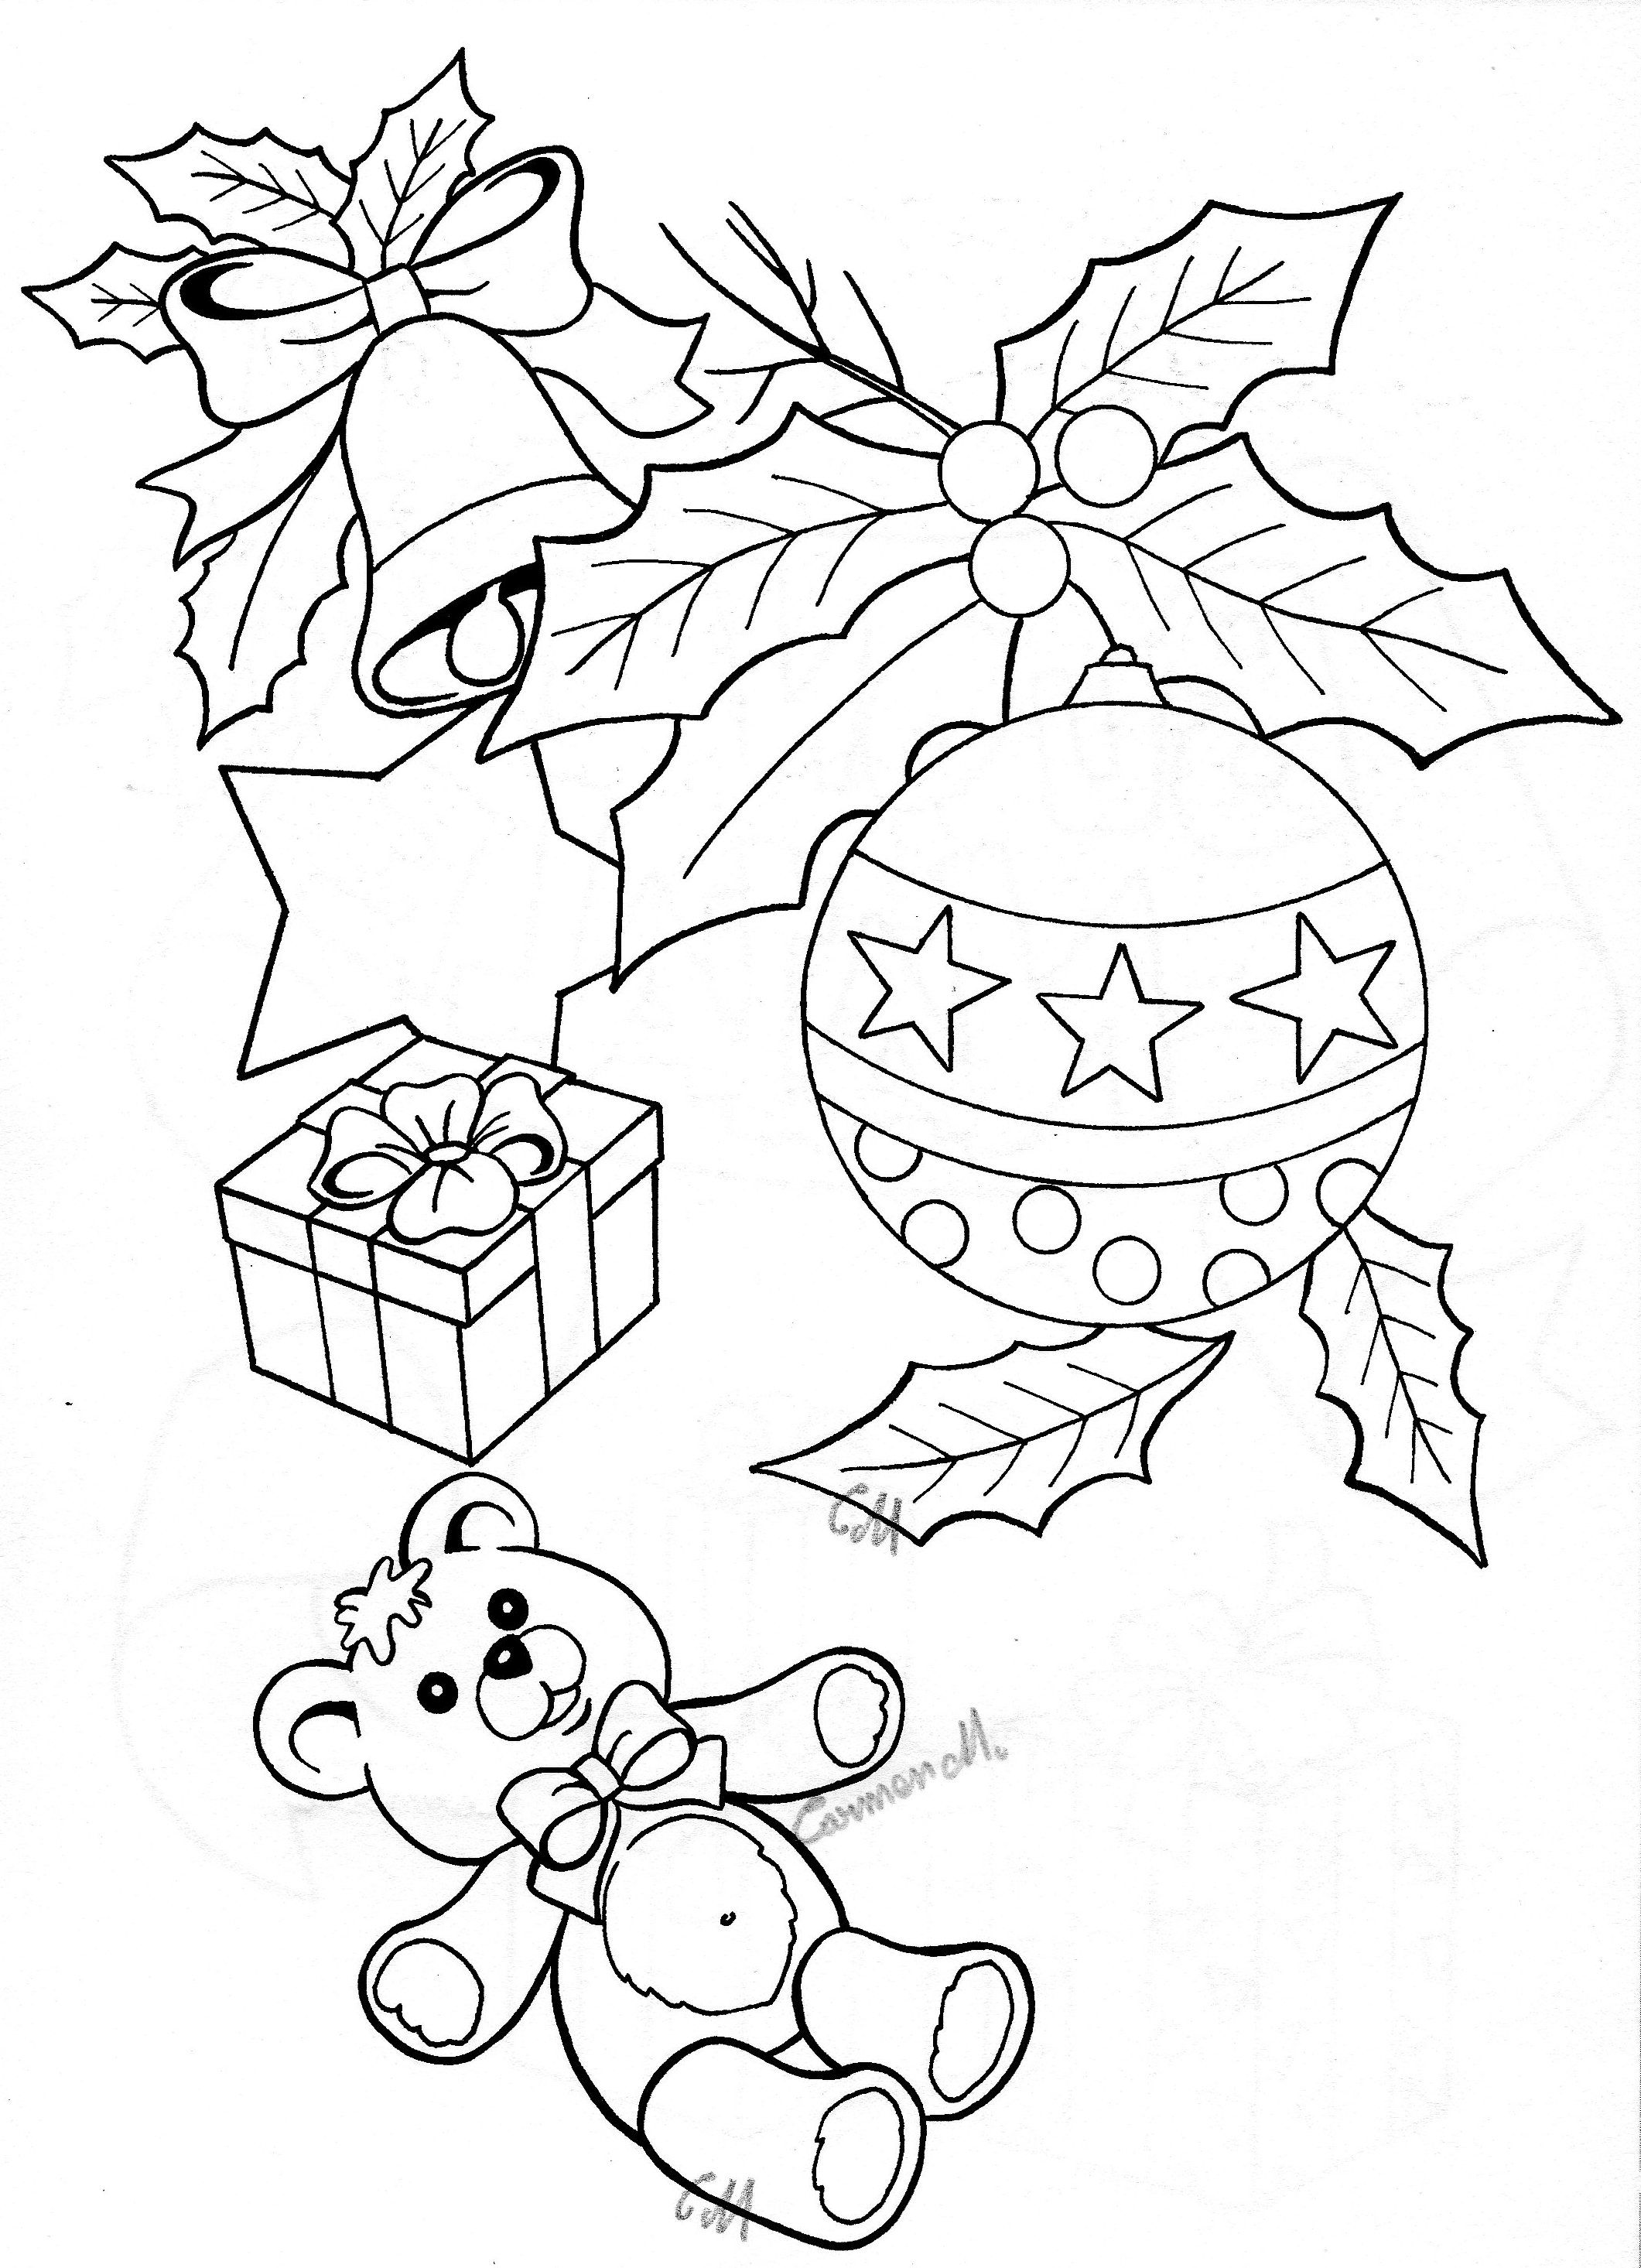 Pin By Maria Abreu Queiroz On Riscos Diversos Christmas Coloring Sheets Christmas Embroidery Christmas Colors